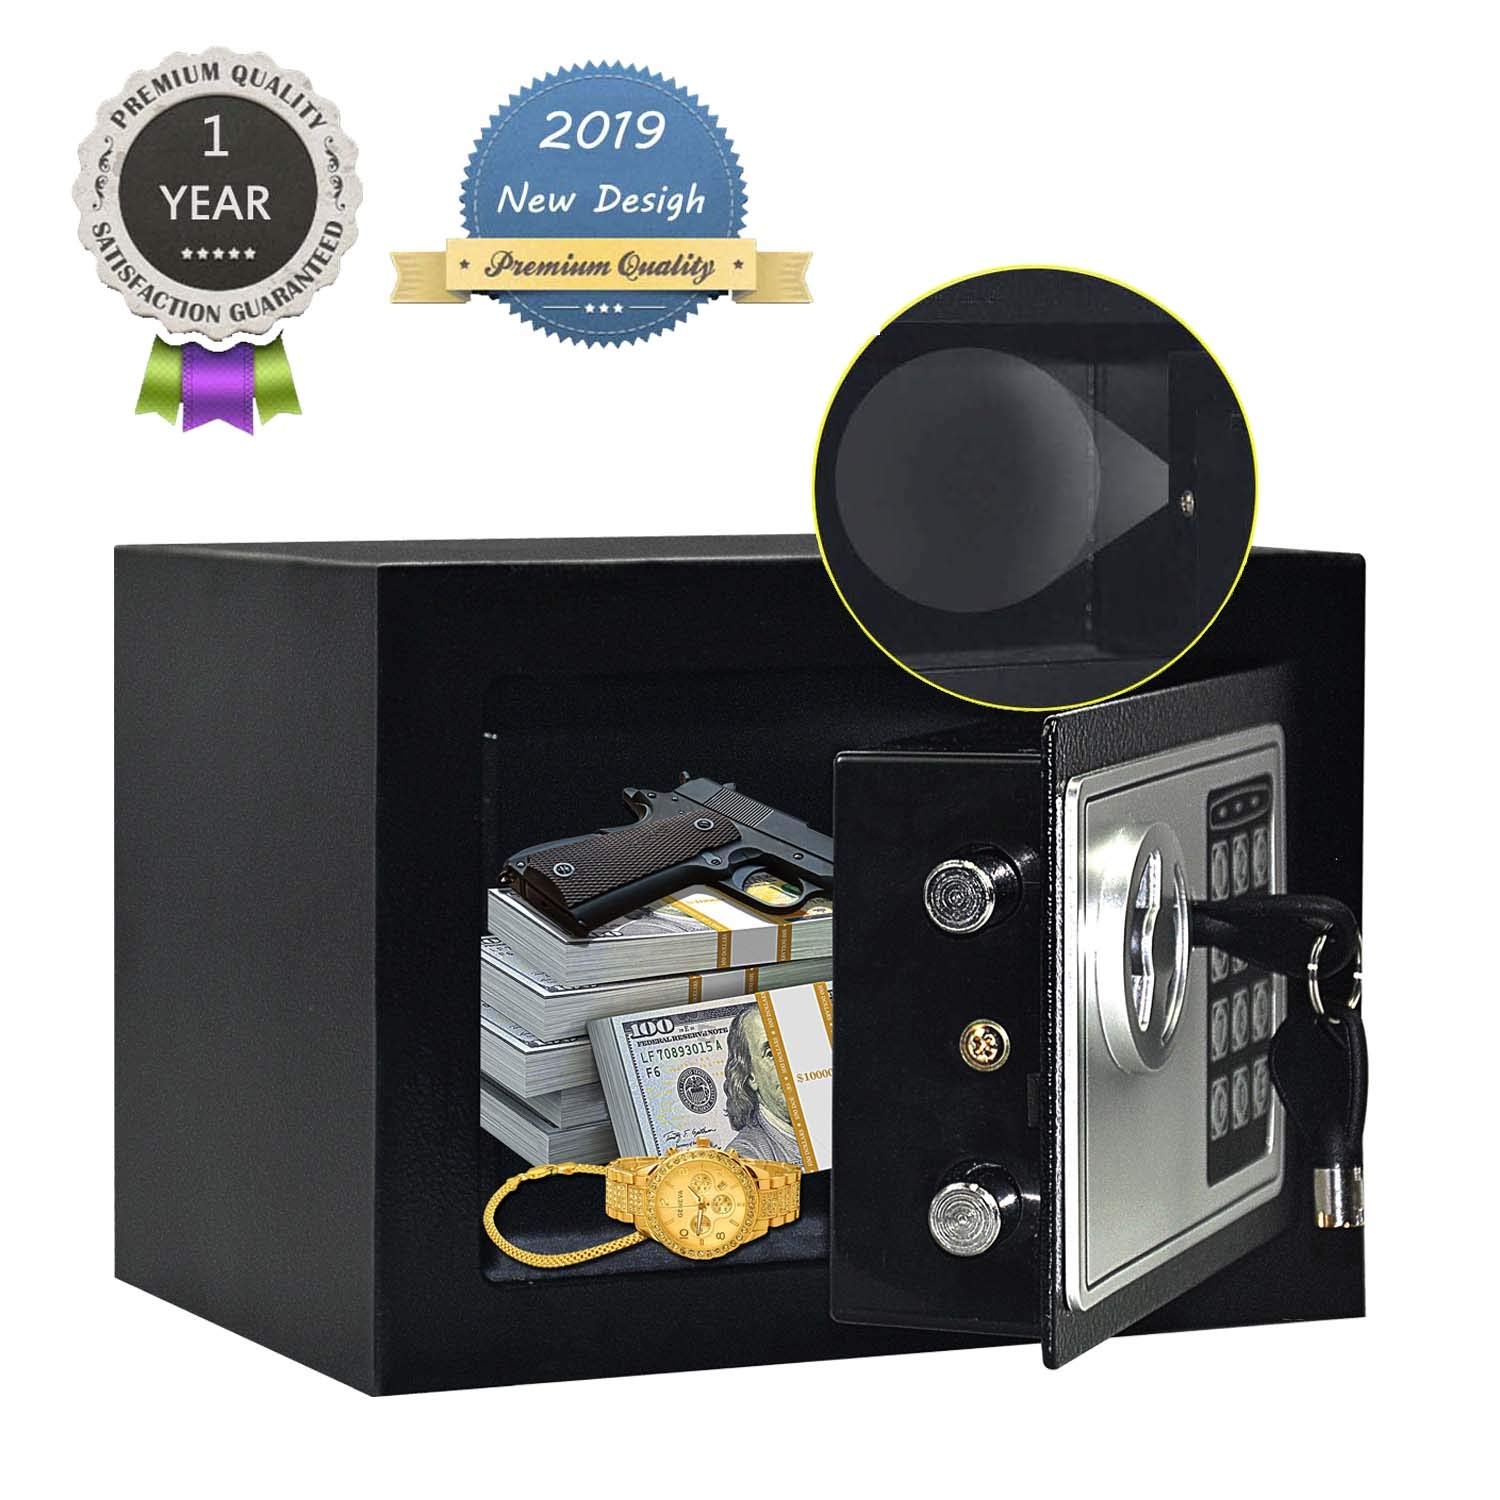 JUGREAT Safe Box with Induction Light,Electronic Digital Securit Safe Steel Construction Hidden with Lock,Wall or Cabinet Anchoring Design for Home Office Hotel BusinessGun Passport Cash Money by JUGREAT